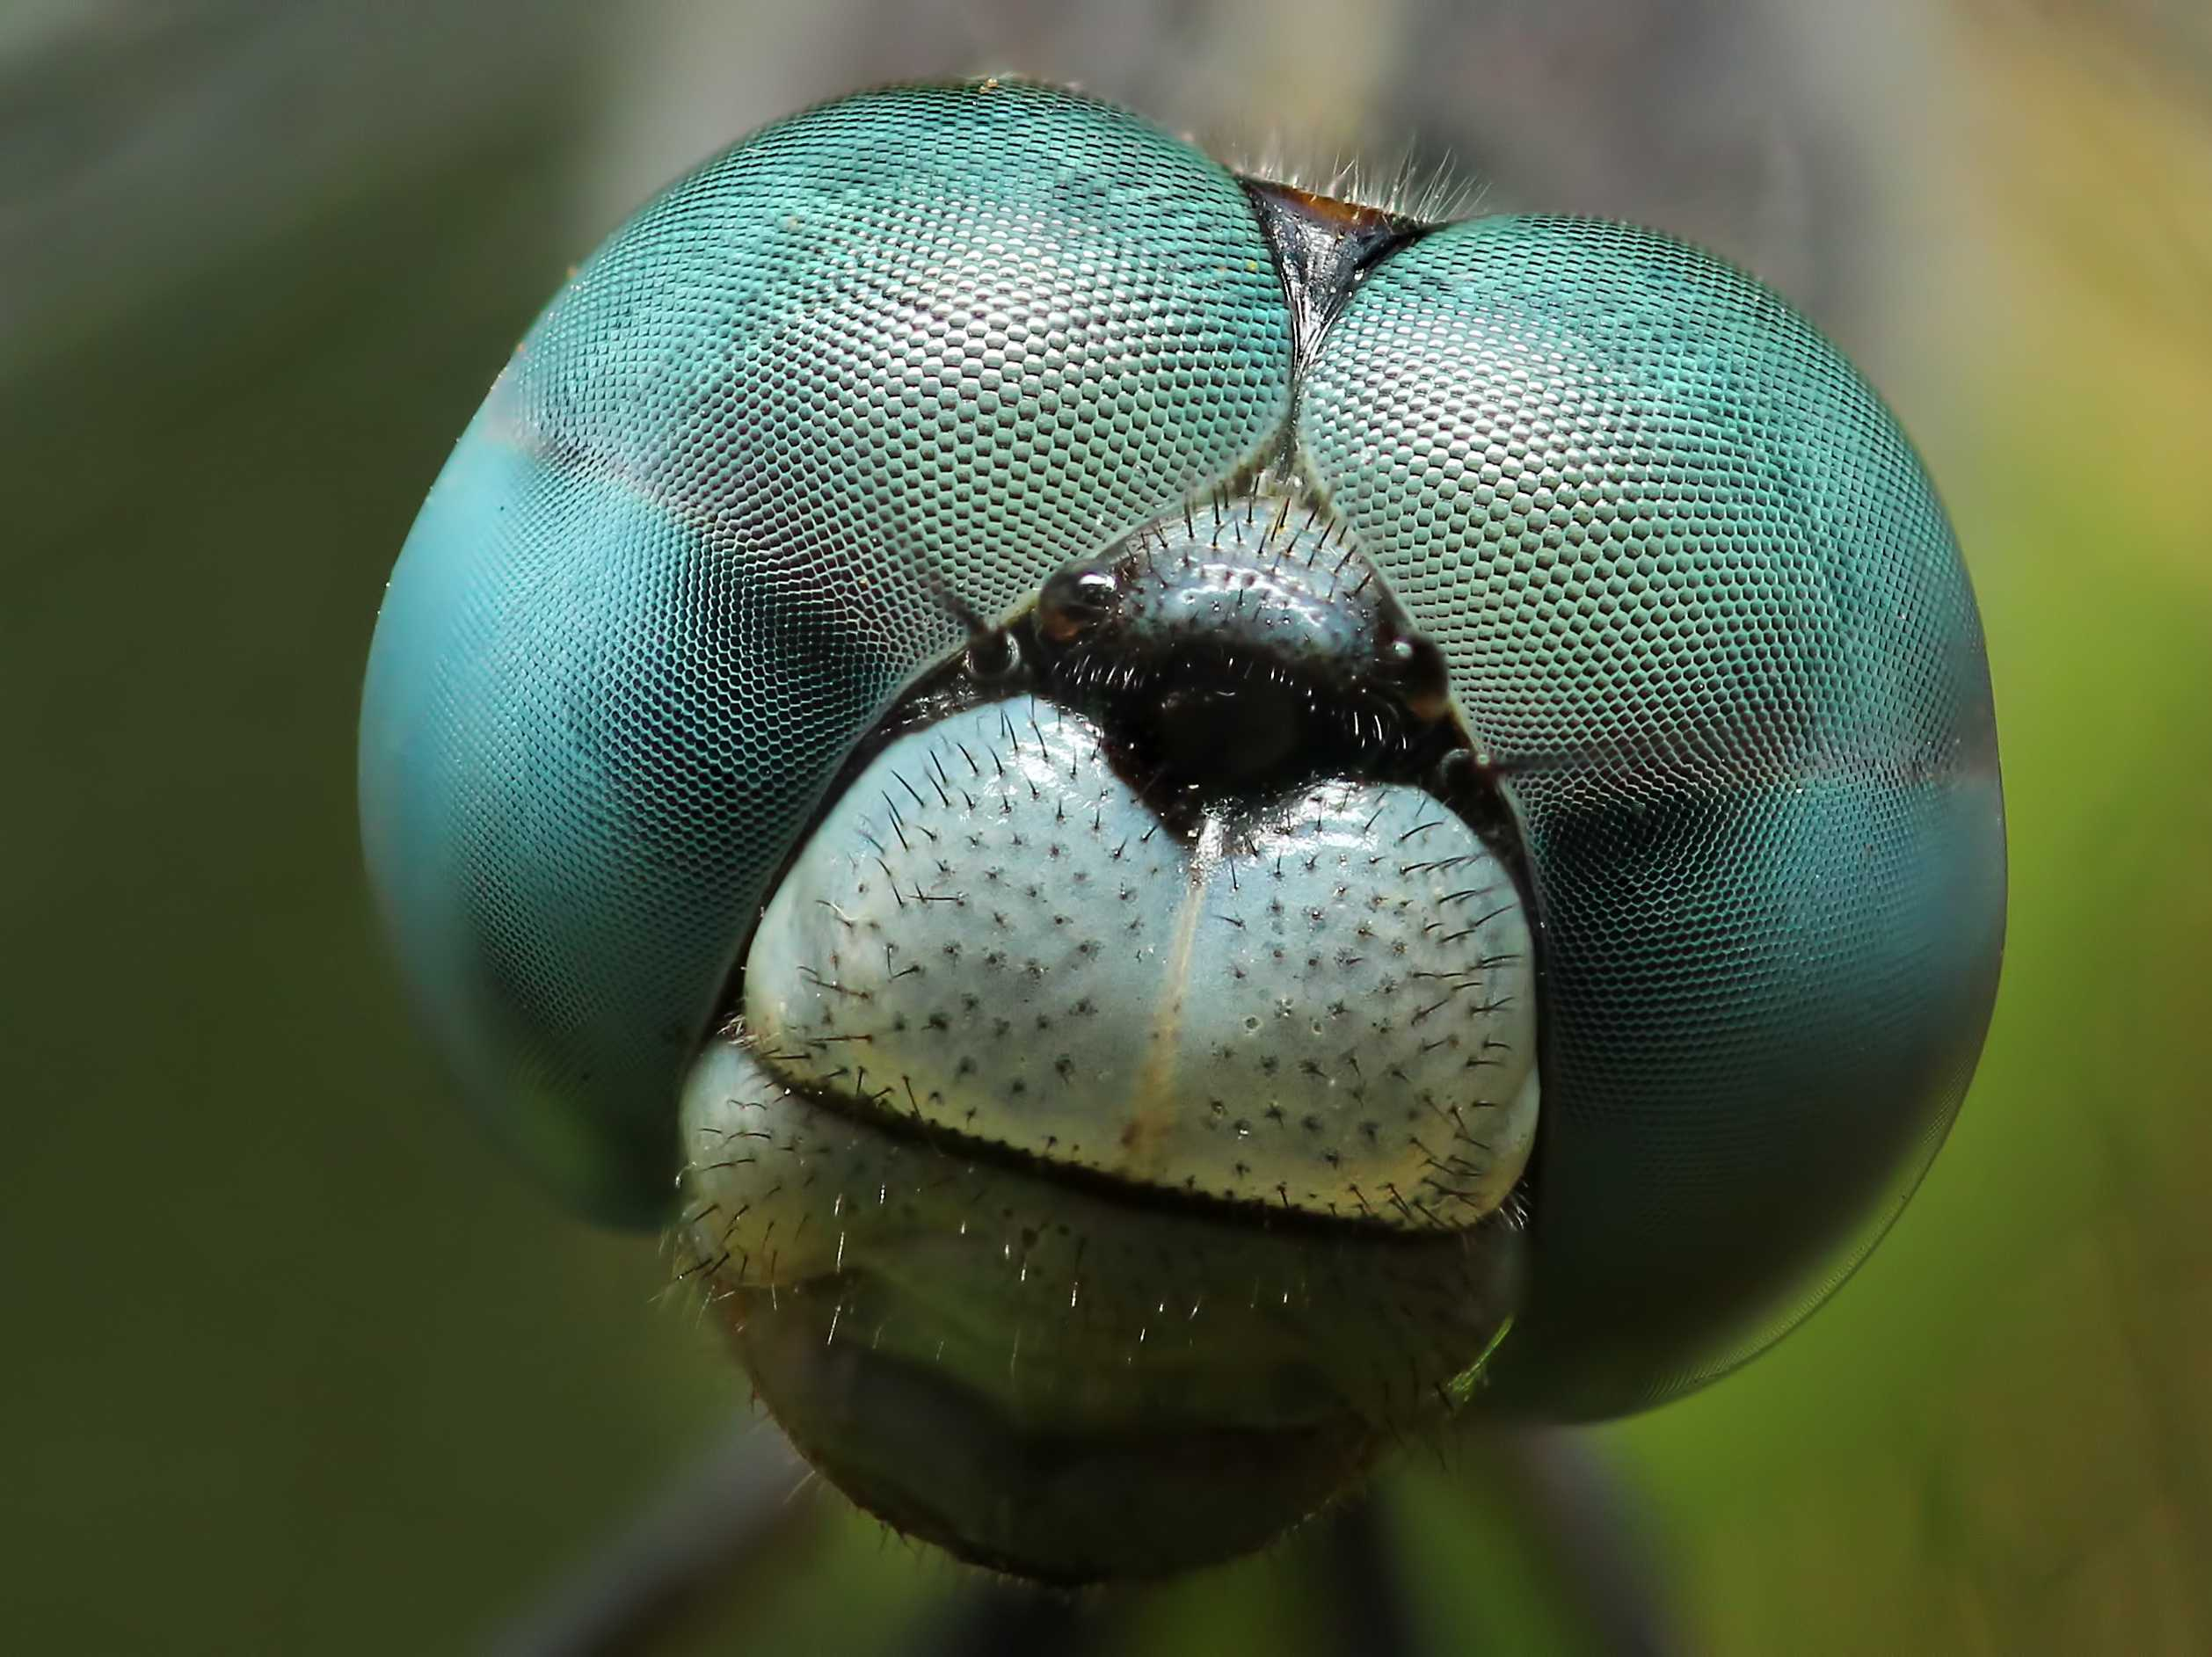 magnified-photos-of-earths-most-underappreciated-animals